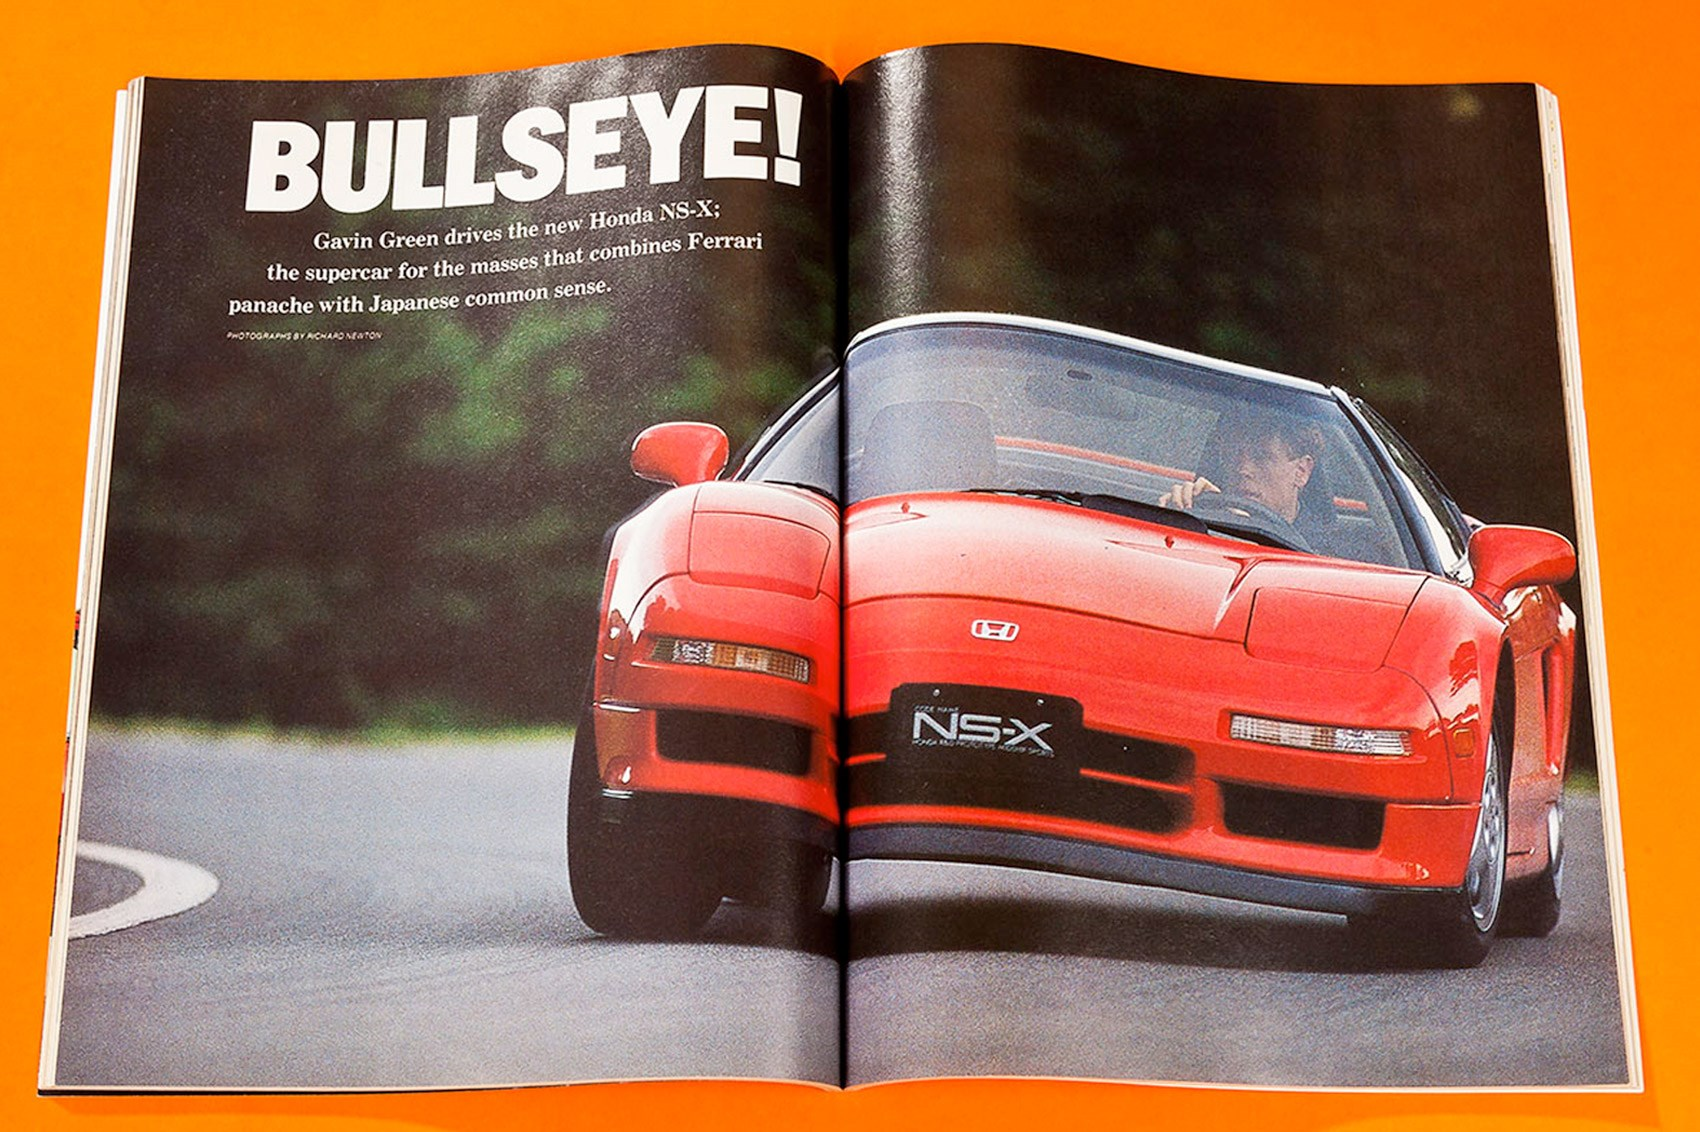 When Car First Drove The Honda Nsx Archive August 1989